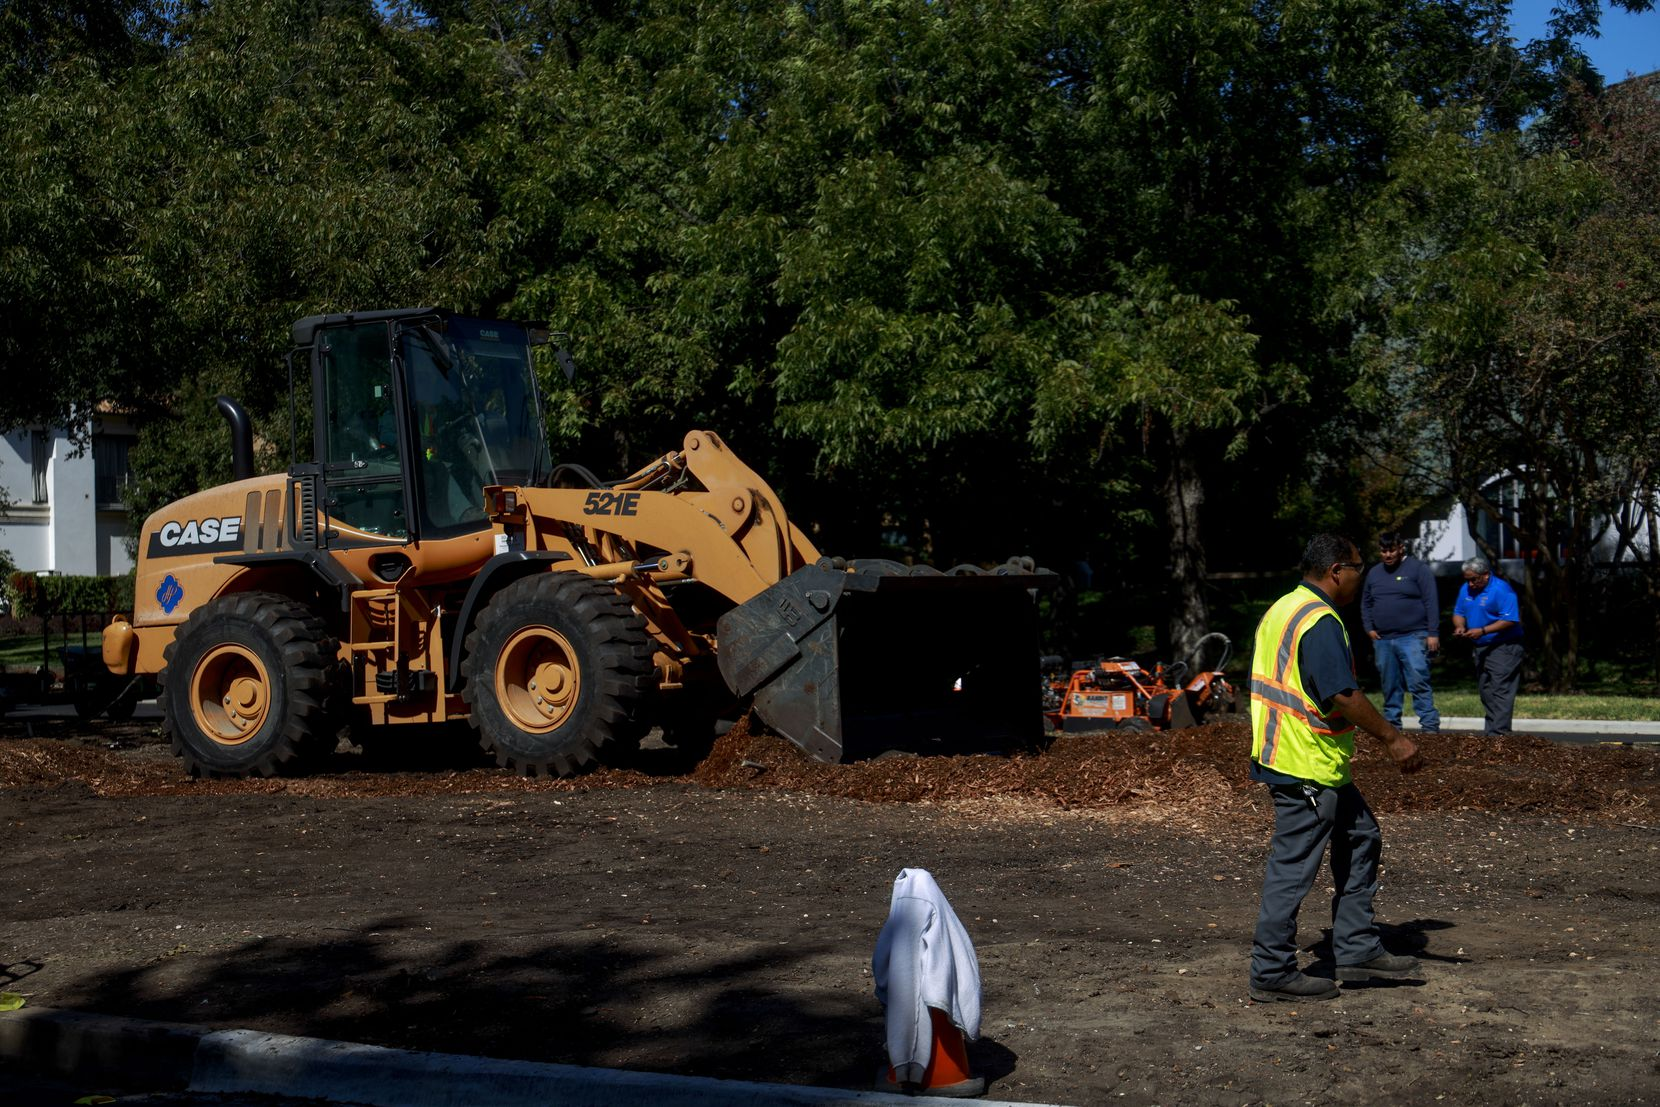 Construction workers remove the remainder of Highland Park's 150 year-old pecan tree on Wednesday, Oct. 23, 2019. By the end of the day, all that was left was a mound of dirt.